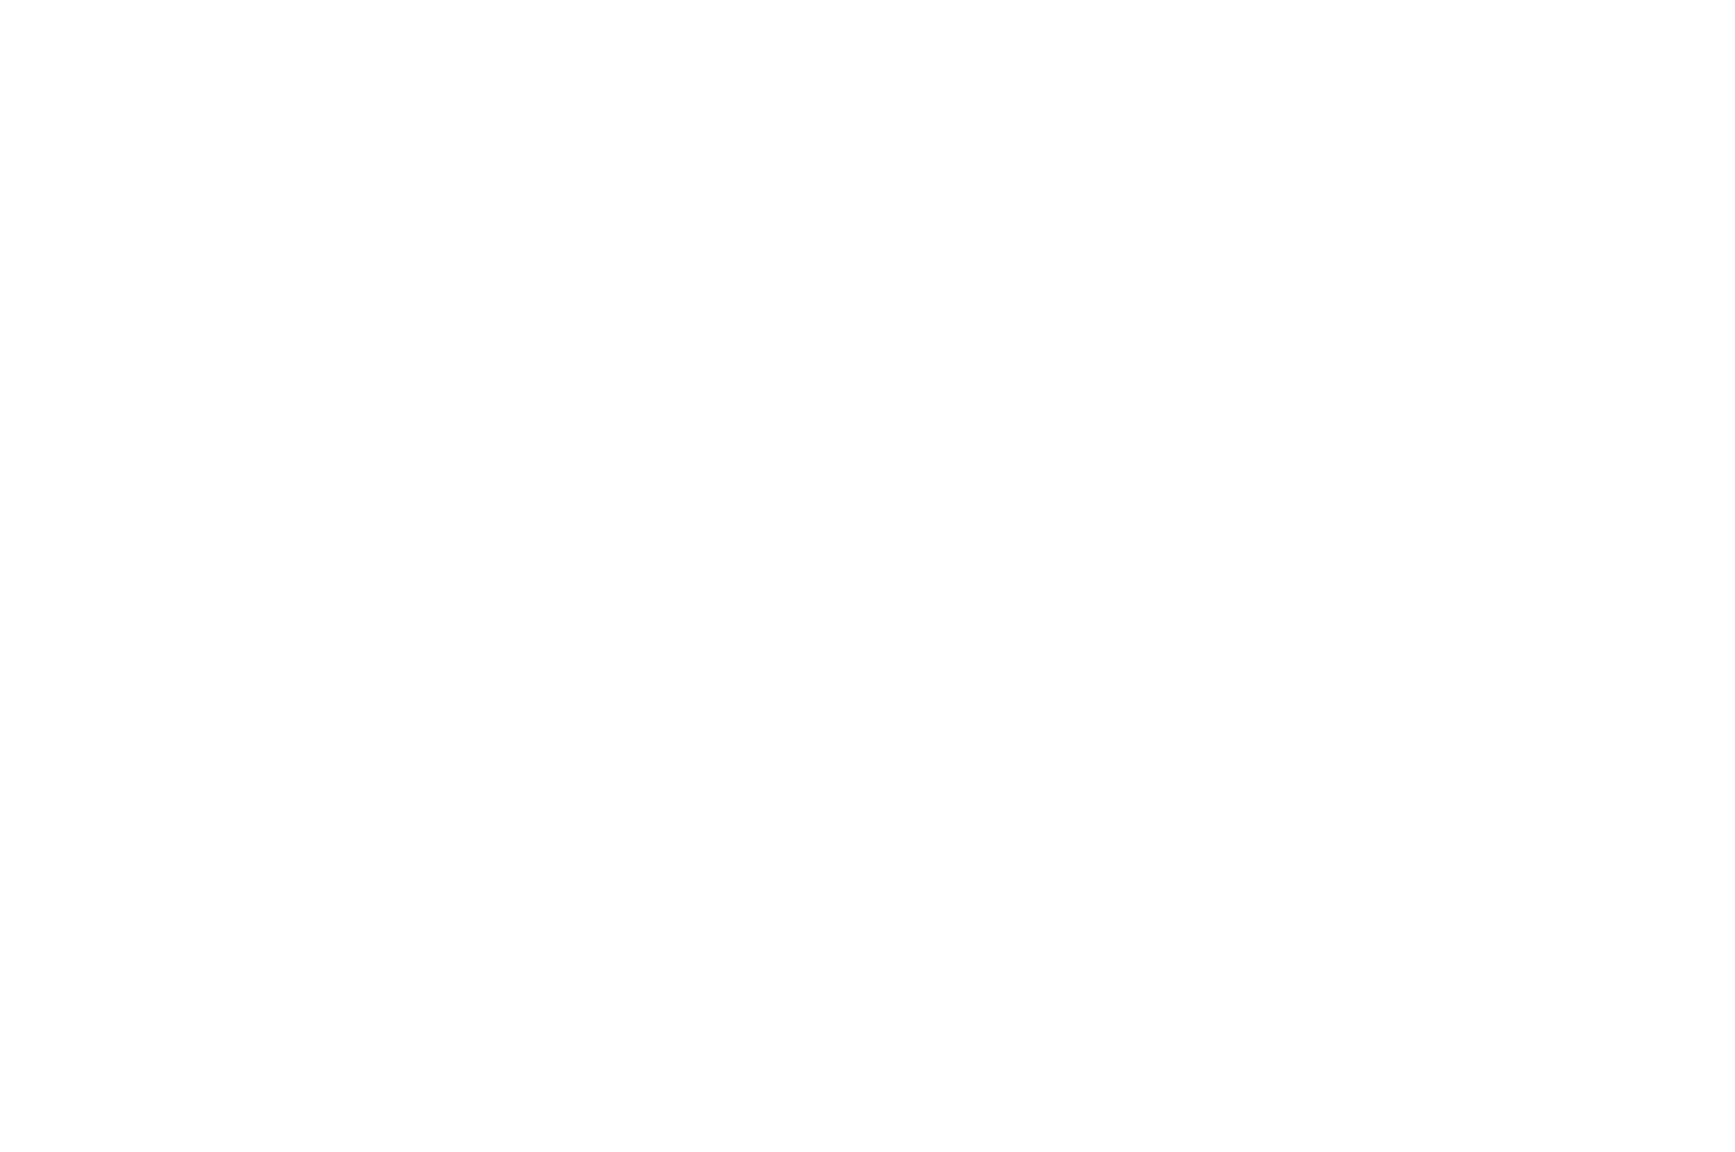 OFFICIAL SELECTION CINEMATOGRAPHY - London Movie Awards - 2021 (2)